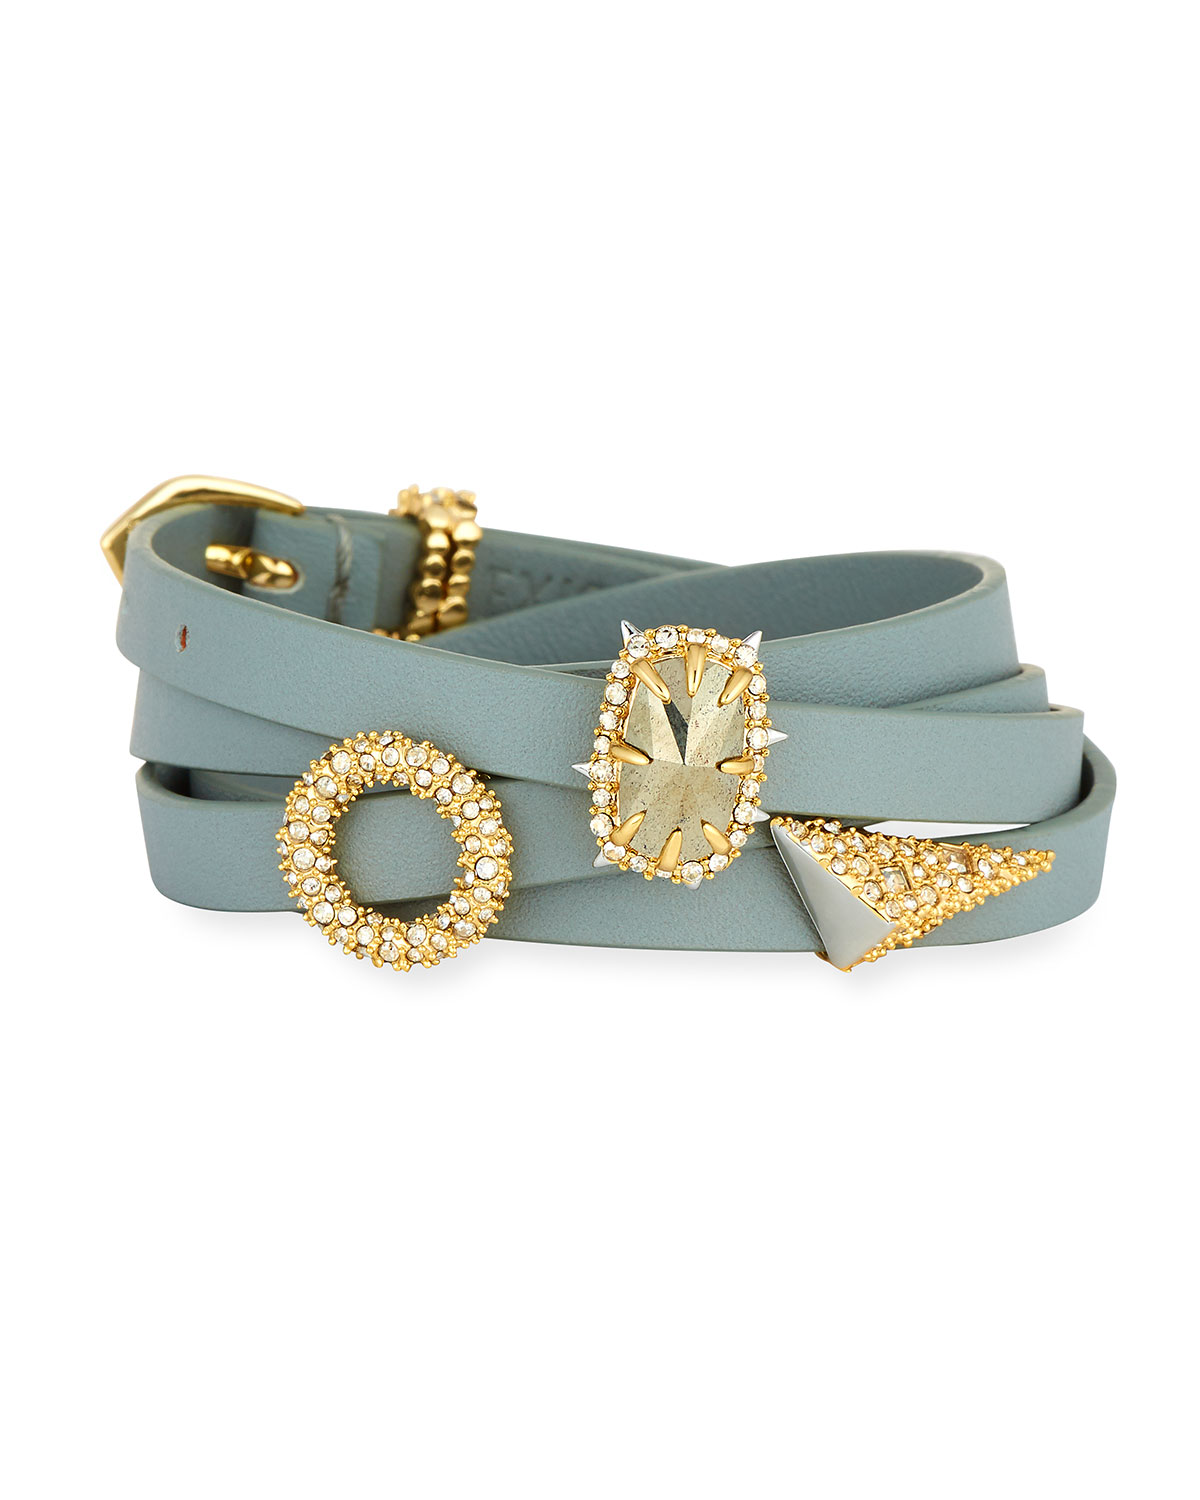 Leather Wrap Charm Bracelet: Alexis Bittar Multi-Wrap Leather Charm Bracelet